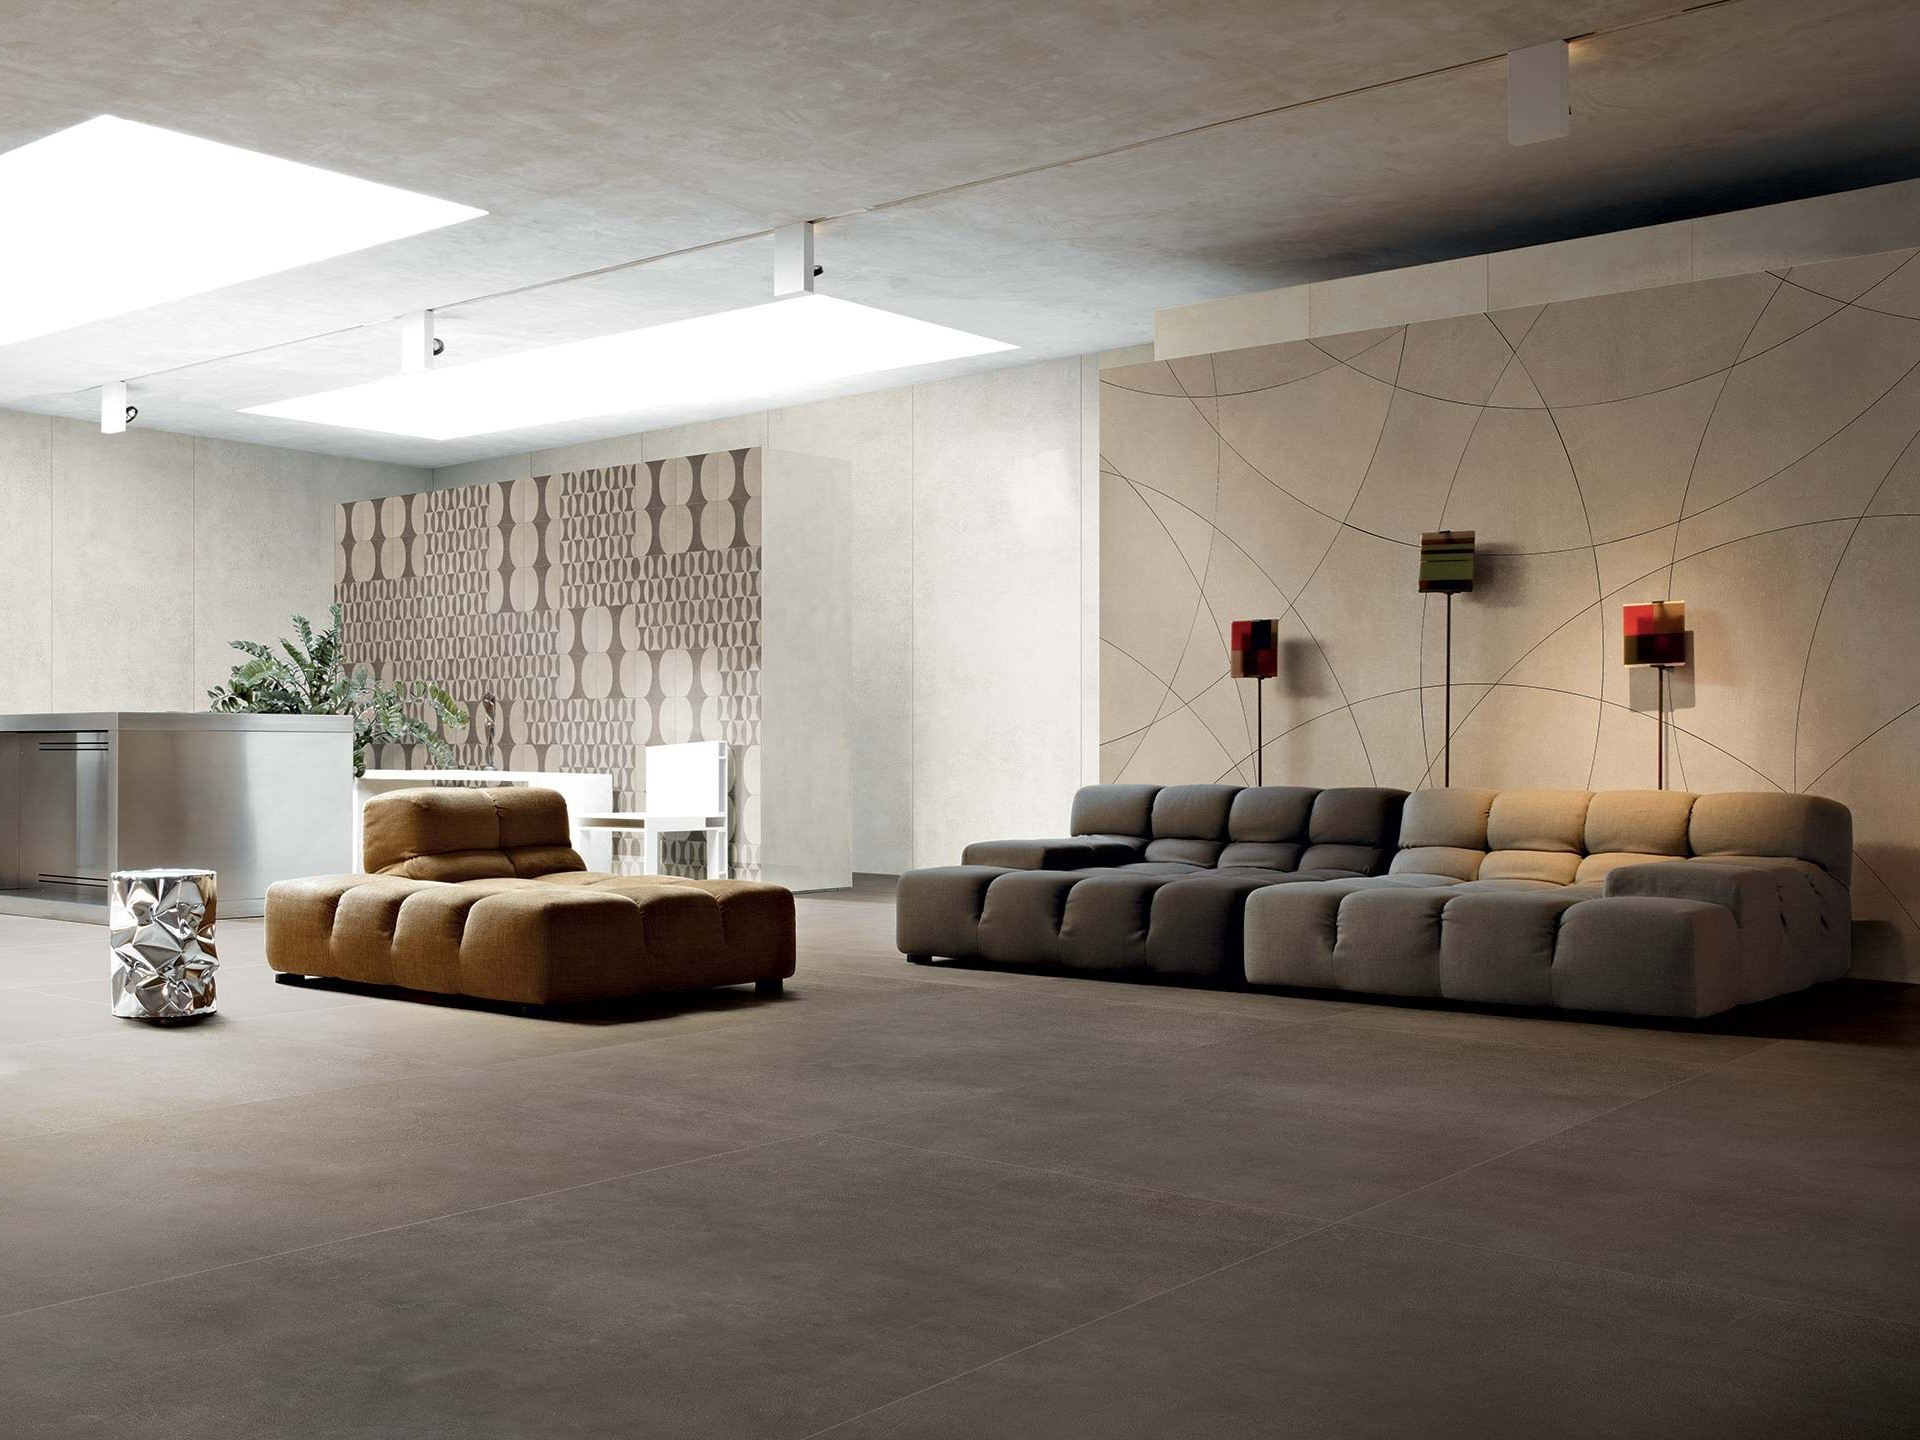 Floor gres archiproducts dailygadgetfo Image collections